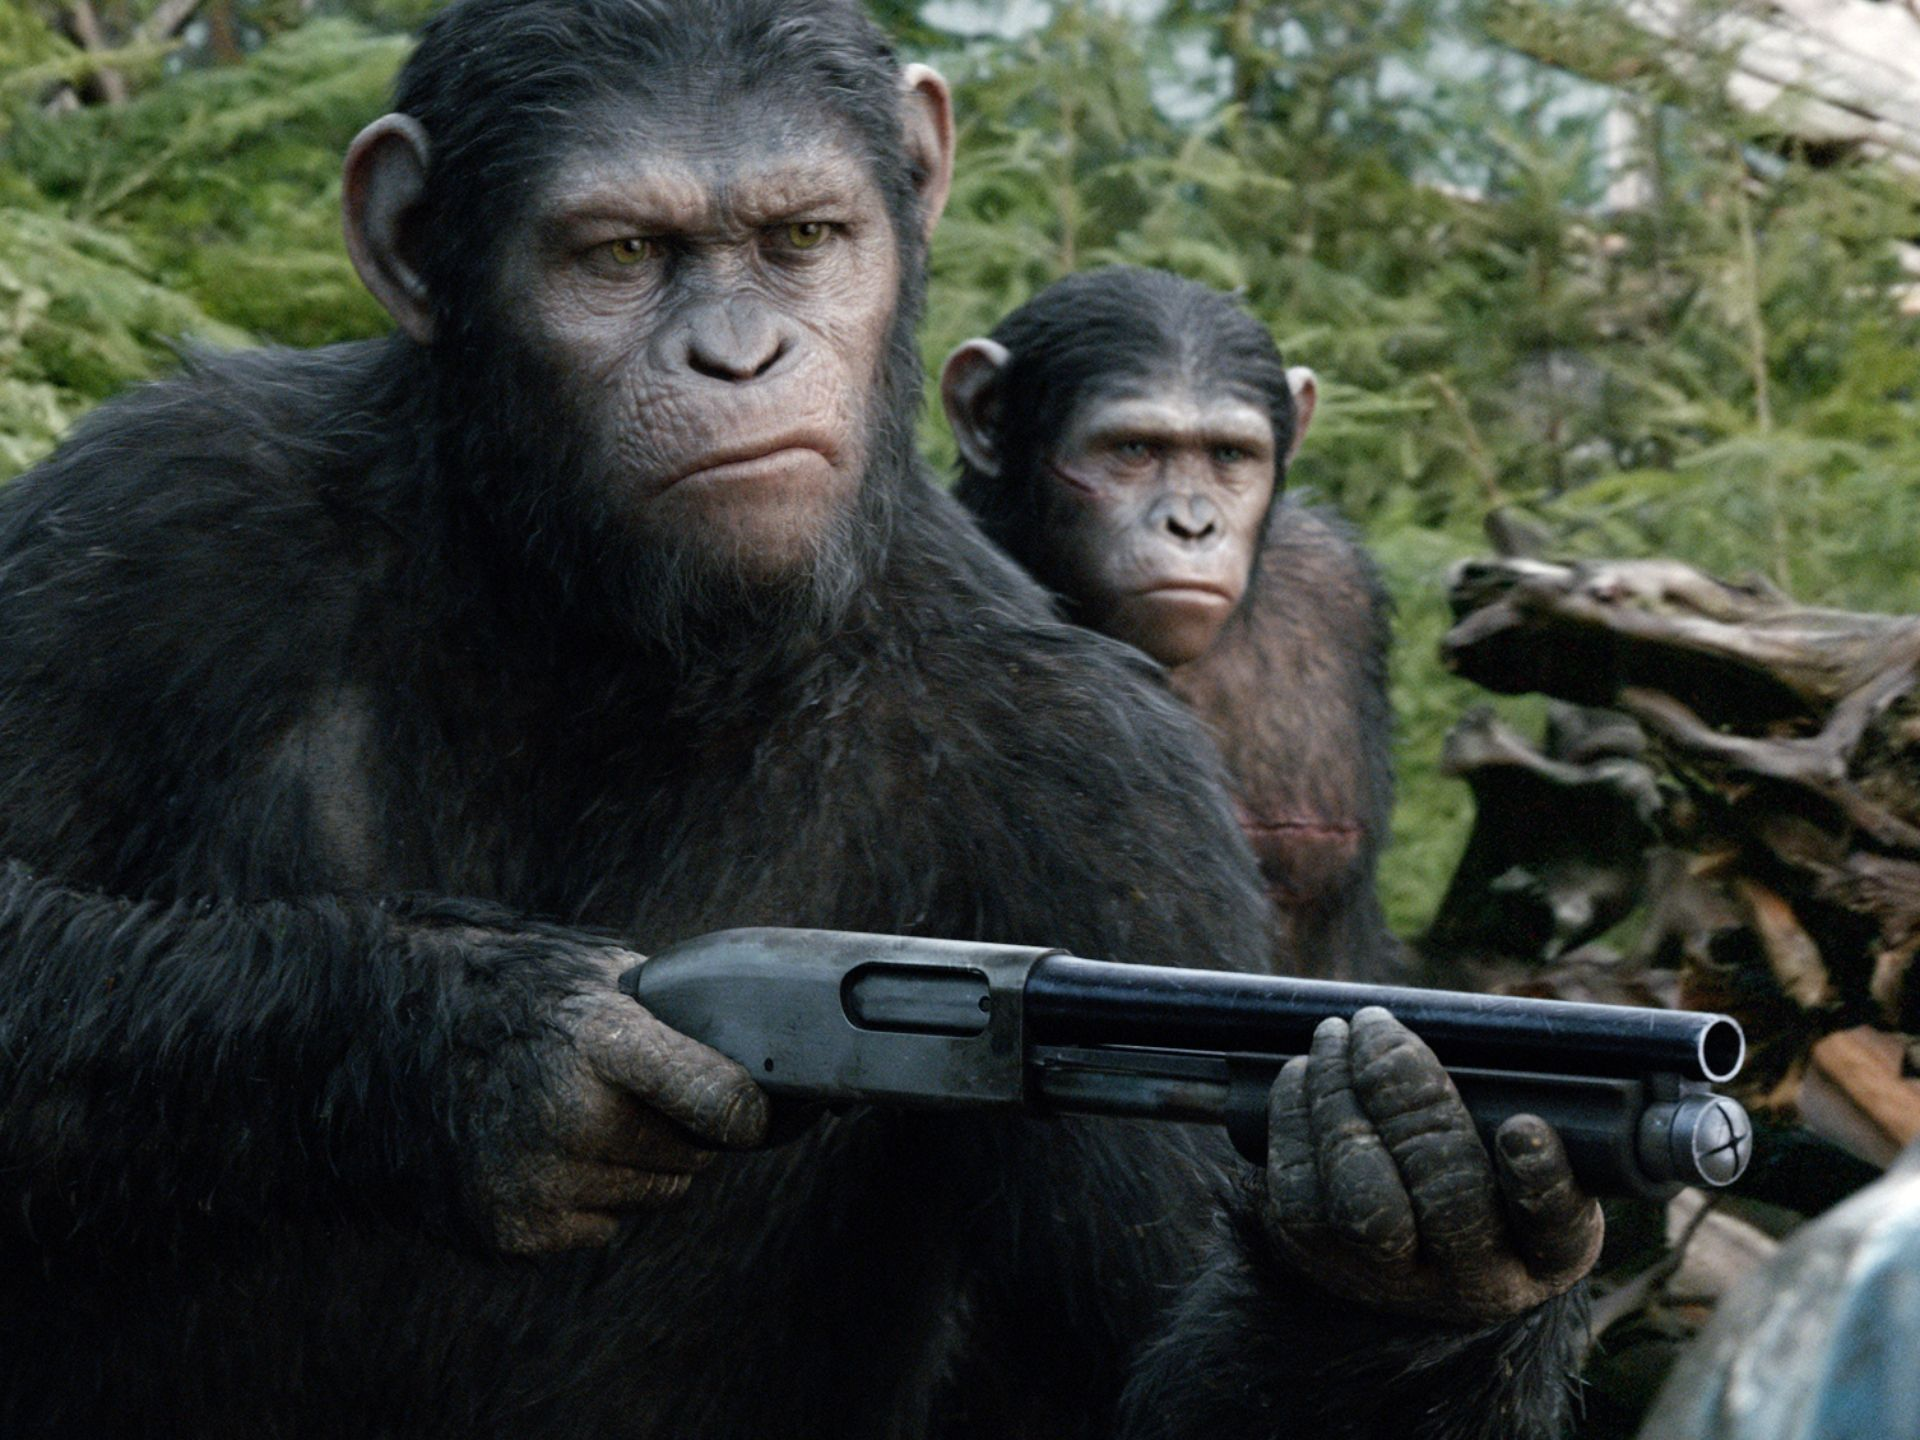 A marketing still from a cool shot I contributed to for 'Dawn of the Planet of the Apes'.